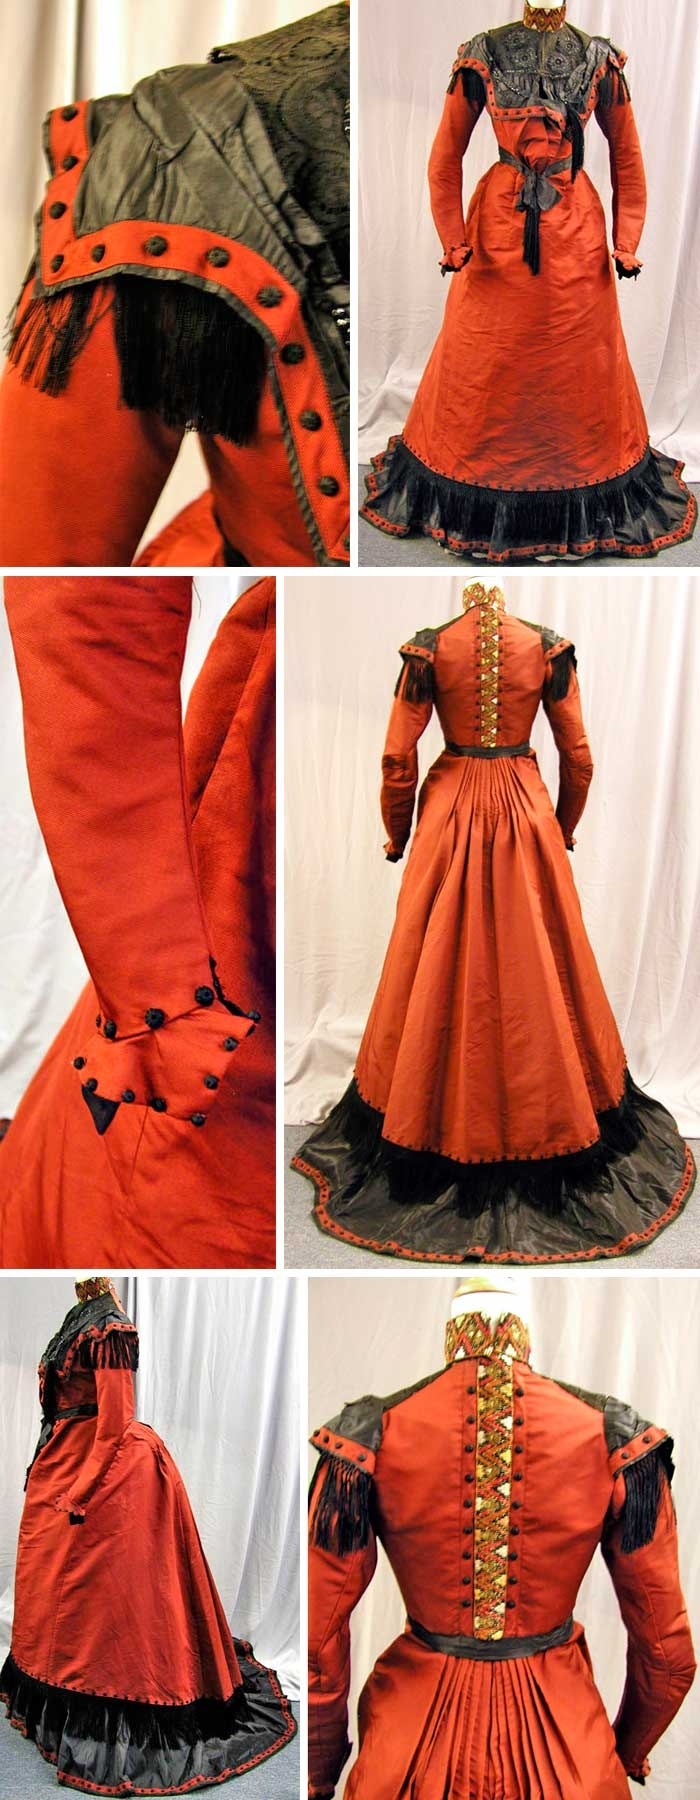 Circa 1890s Walking dress by Bostic of Boston. Deep rust silk trimmed in black silk, completely lined in cotton. First layer of trim at bottom of skirt is fringe. Via extantgowns.blogspot.com.au/.